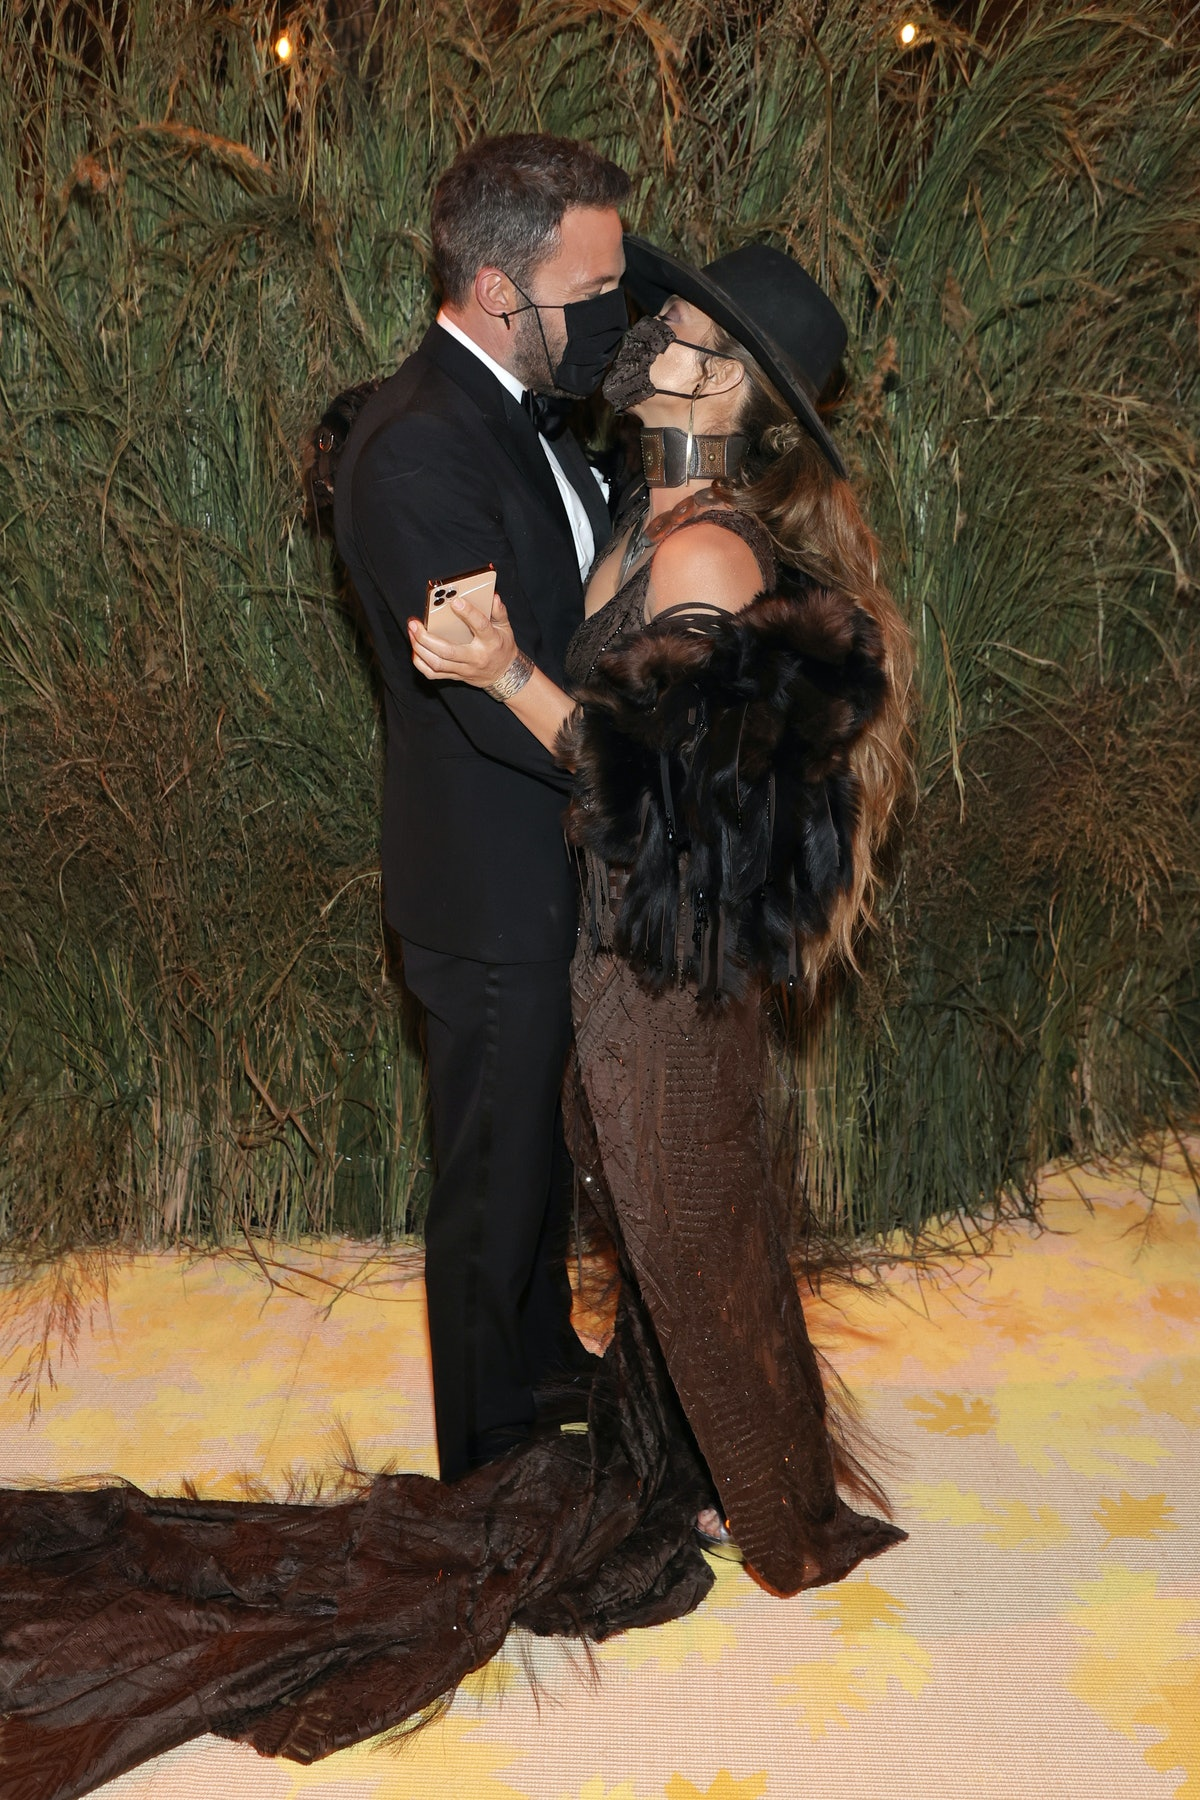 Jennifer Lopez and Ben Affleck's masked kiss at the Met Gala speaks volumes about their relationship...